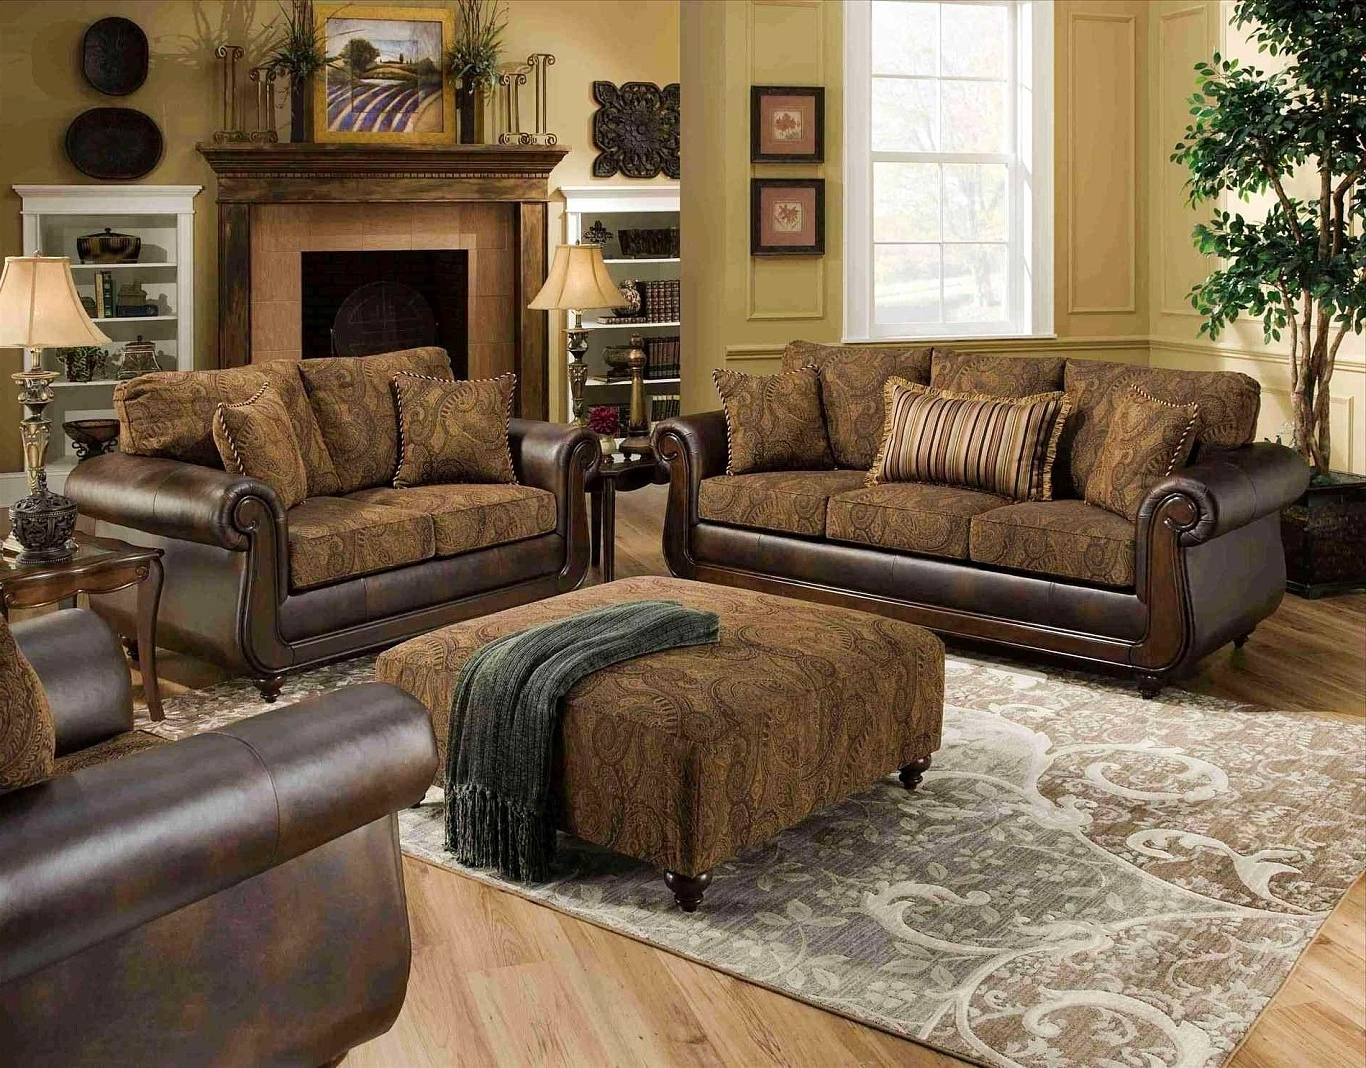 Most Recently Released Farmers Furniture Sectional Sofas For Vino Reclining Sofa Badcock Hamilton Badcock Amarillo Trifecta (View 16 of 20)